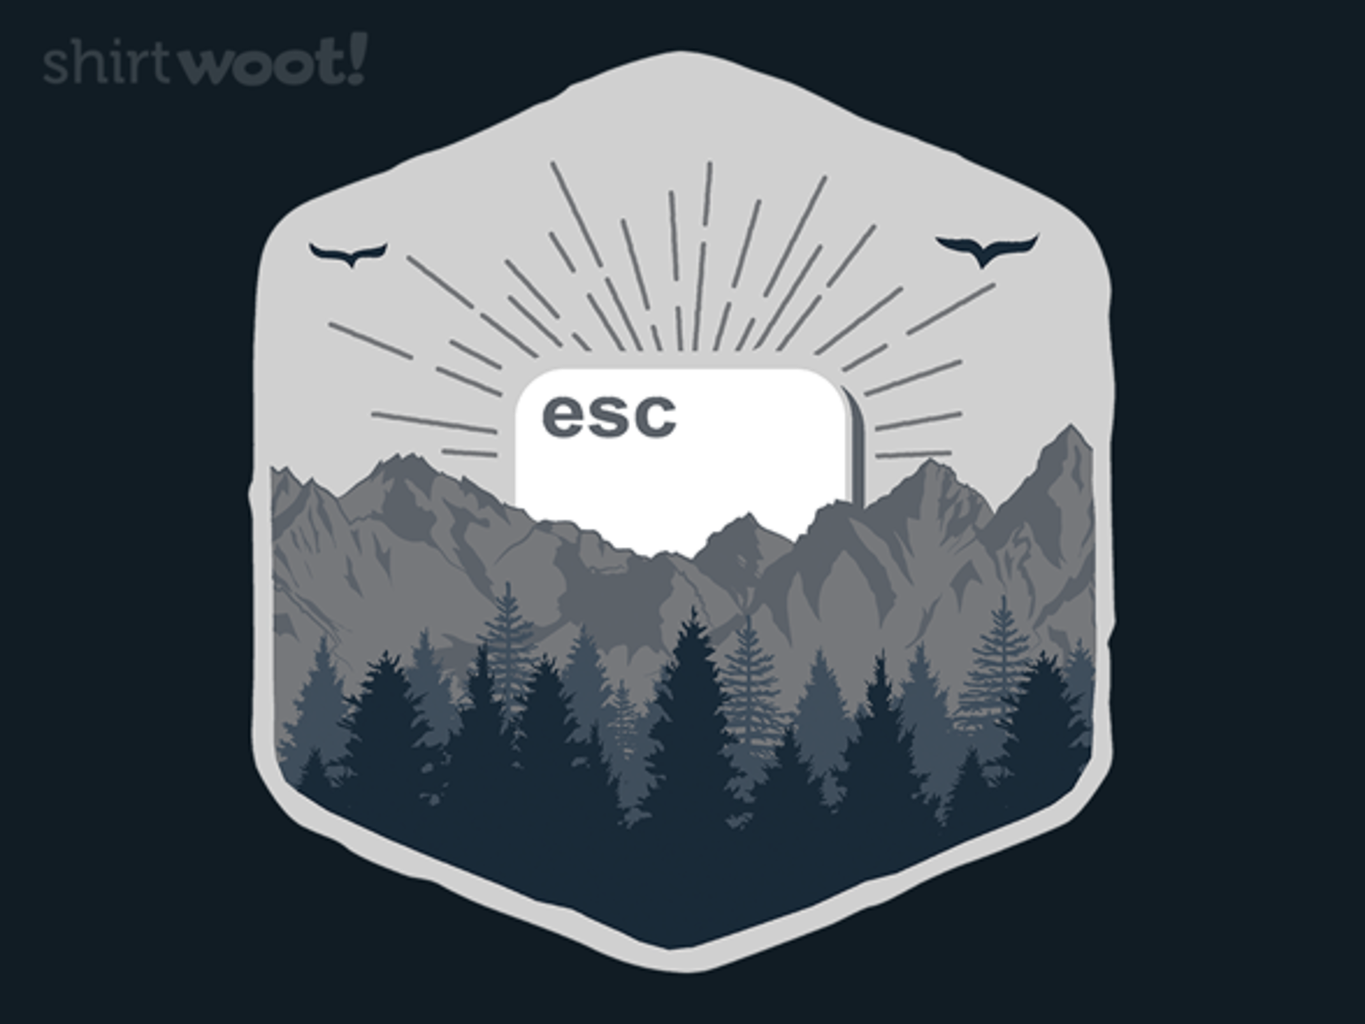 Woot!: Esc to Nature